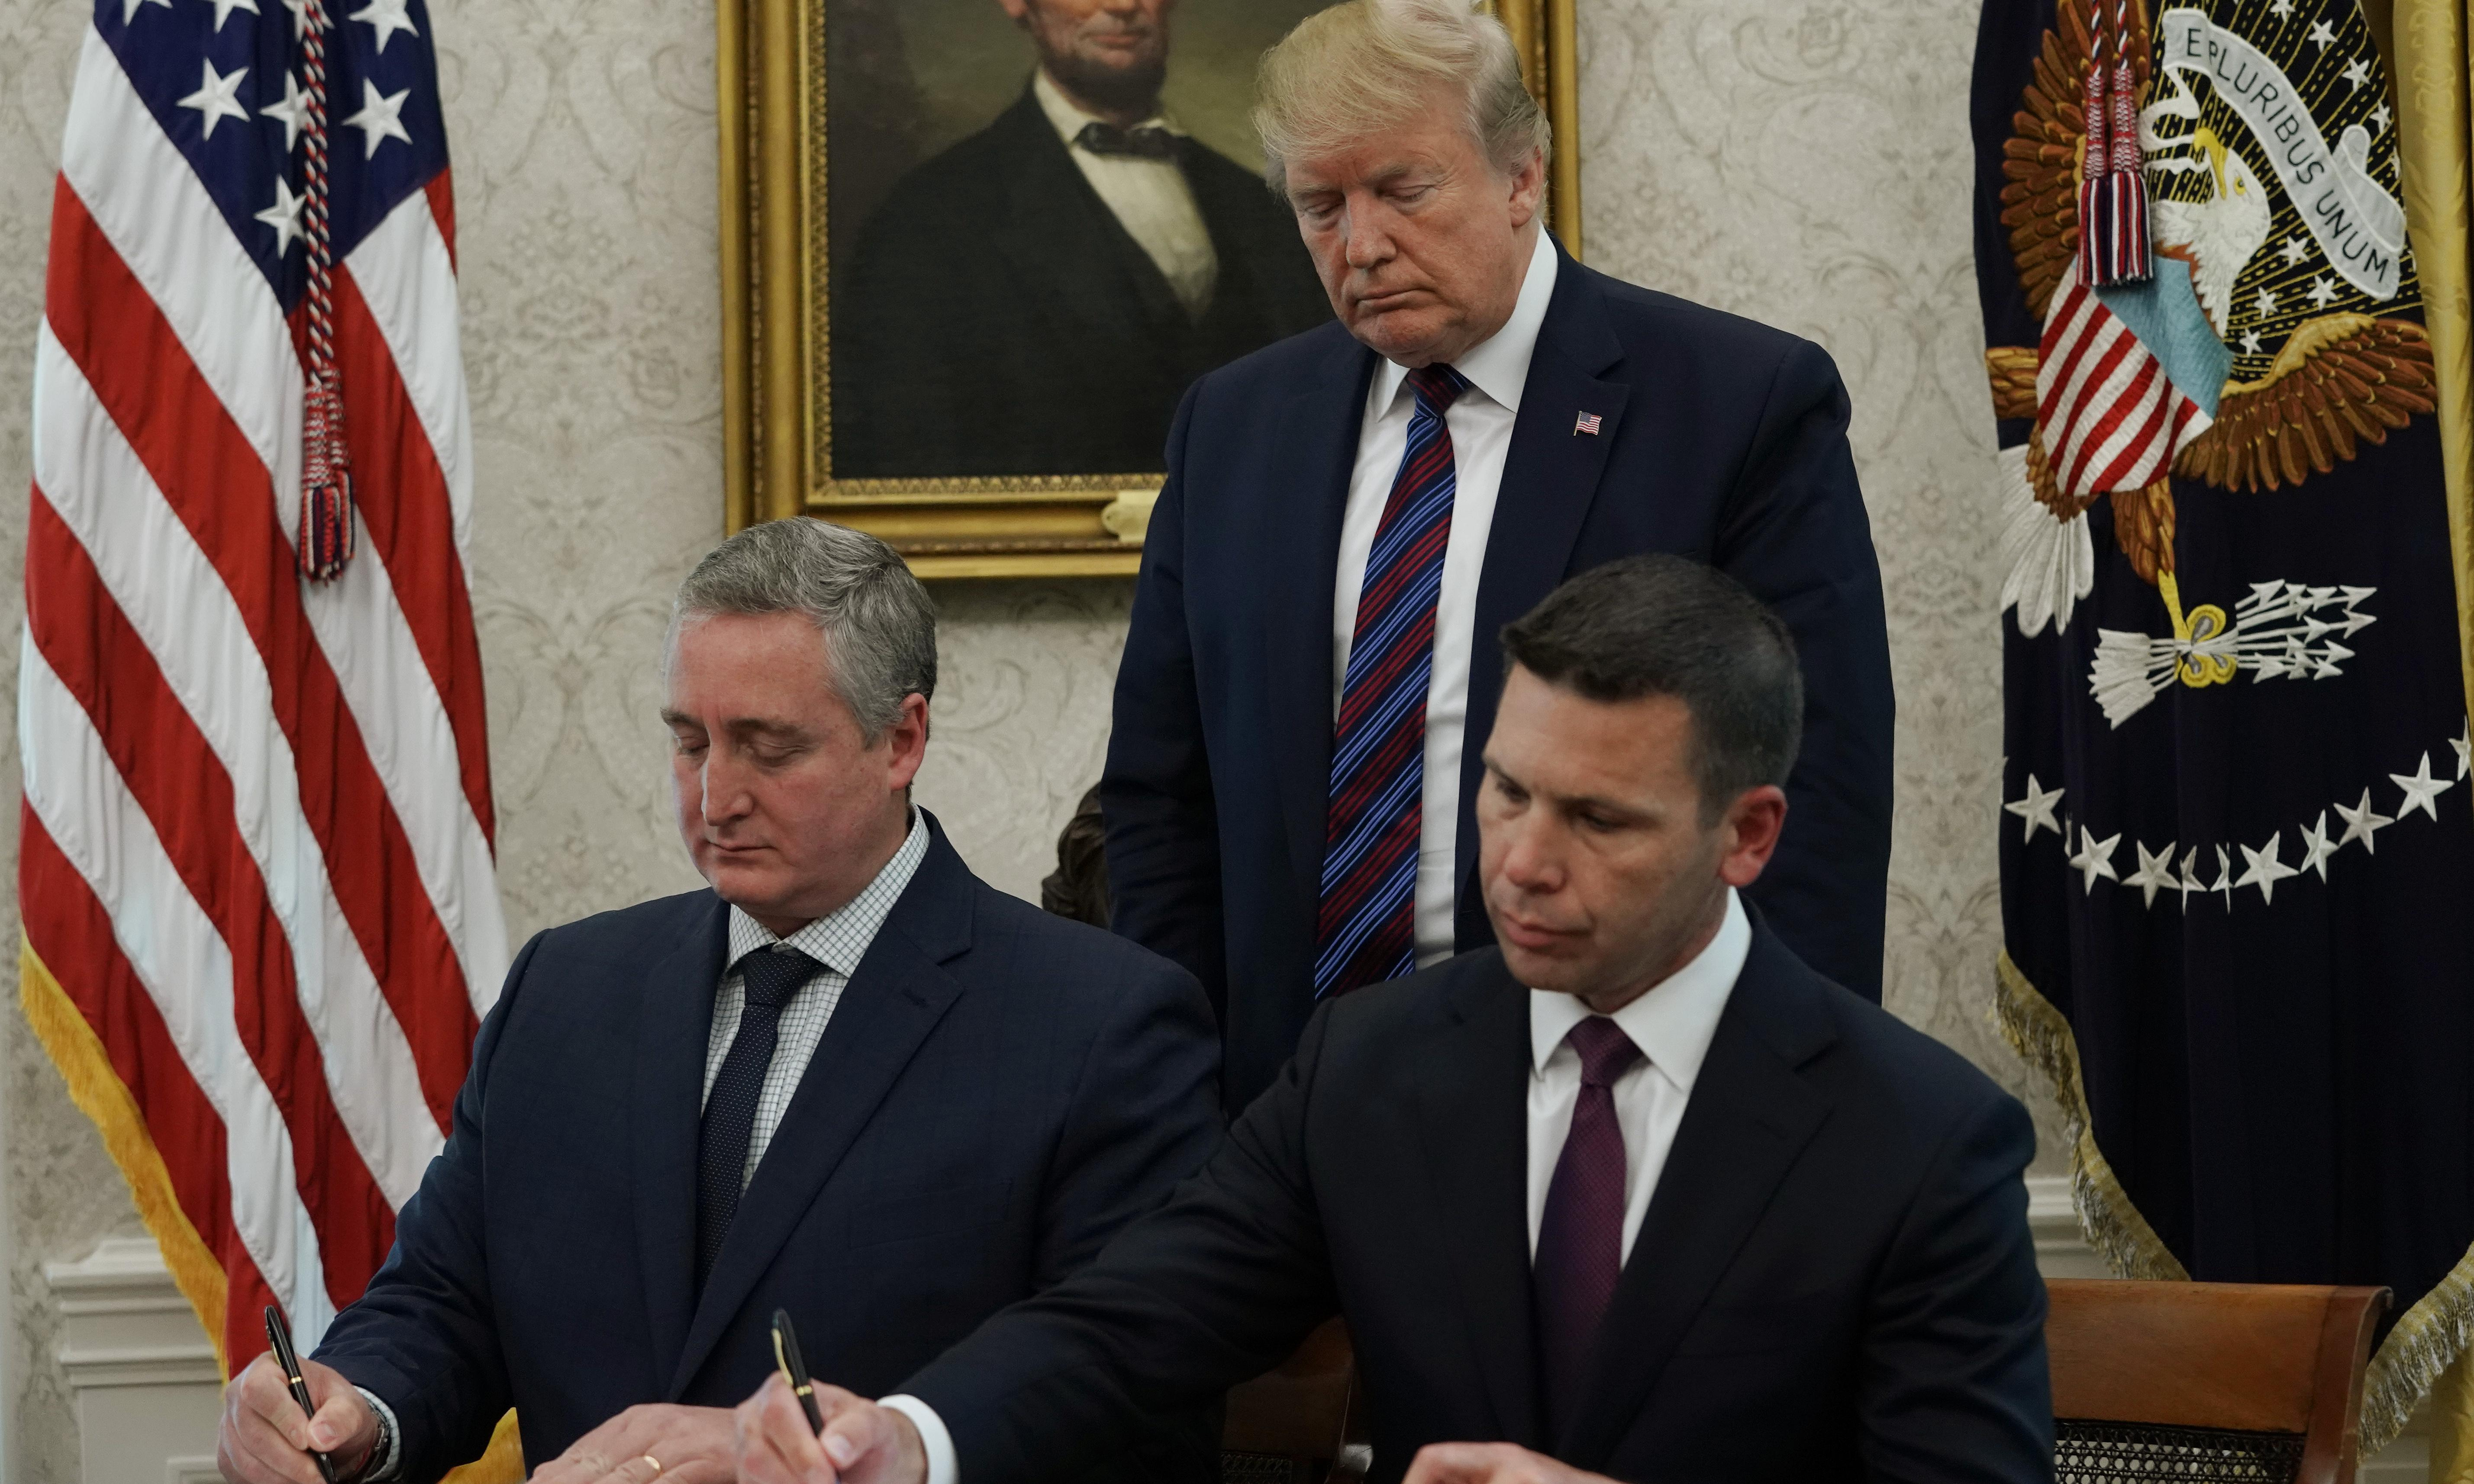 Trump says agreement reached with Guatemala to restrict asylum seekers